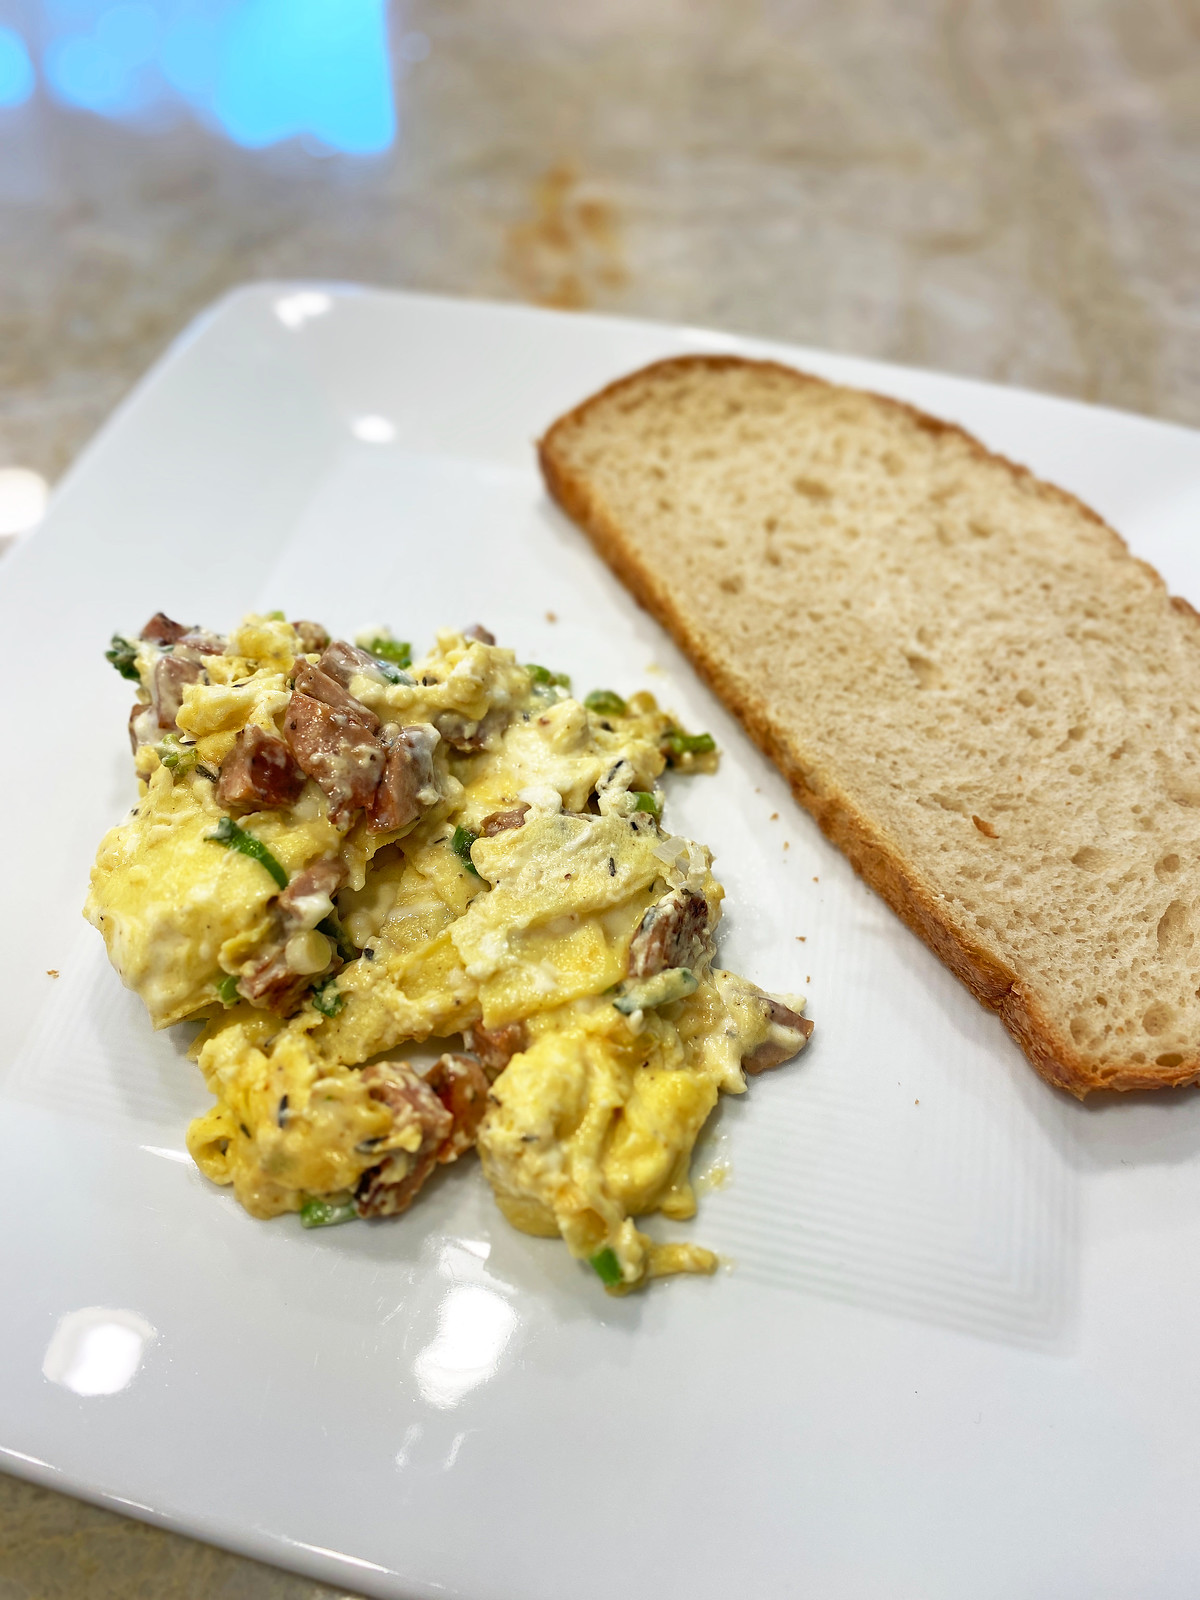 Scrambled eggs with sausage and thyme